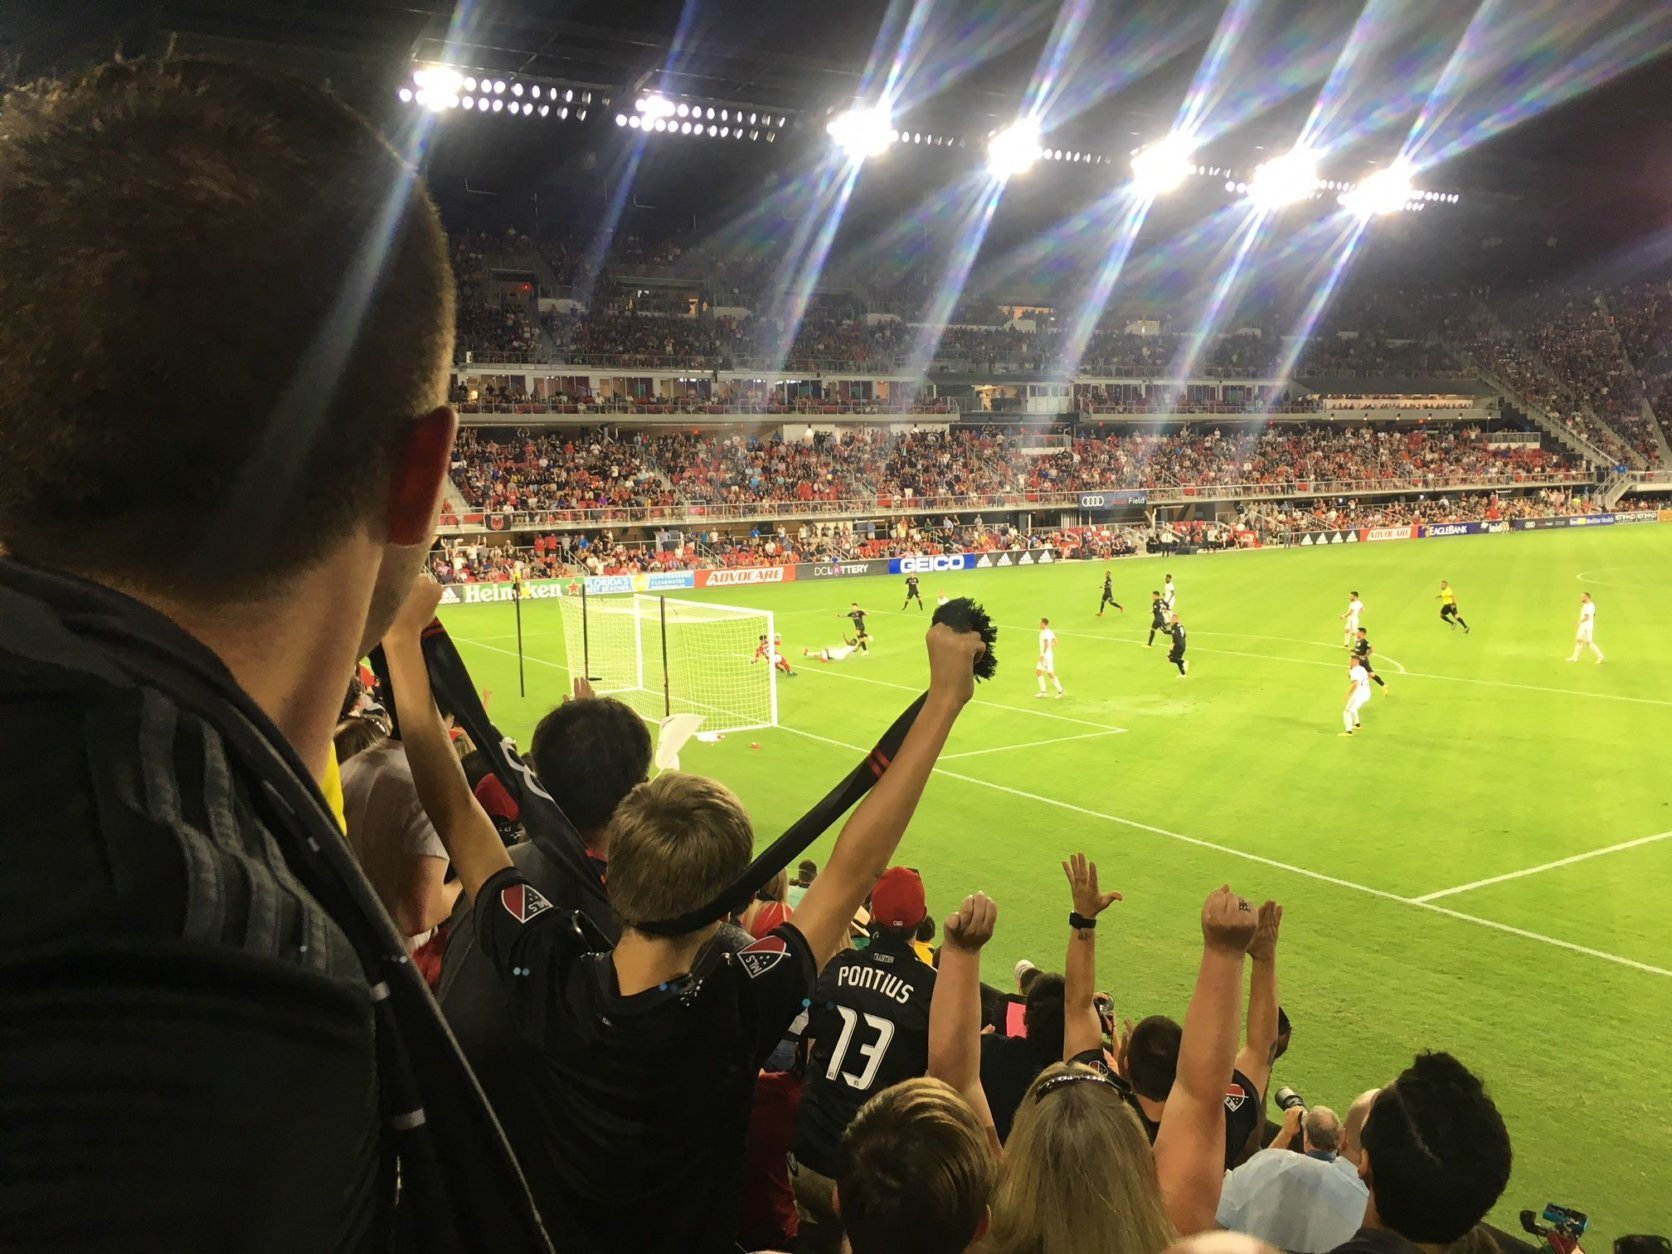 Paul Arriola scores the first of his two goals on the night, to put D.C. United ahead 2-0. (WTOP/Noah Frank)